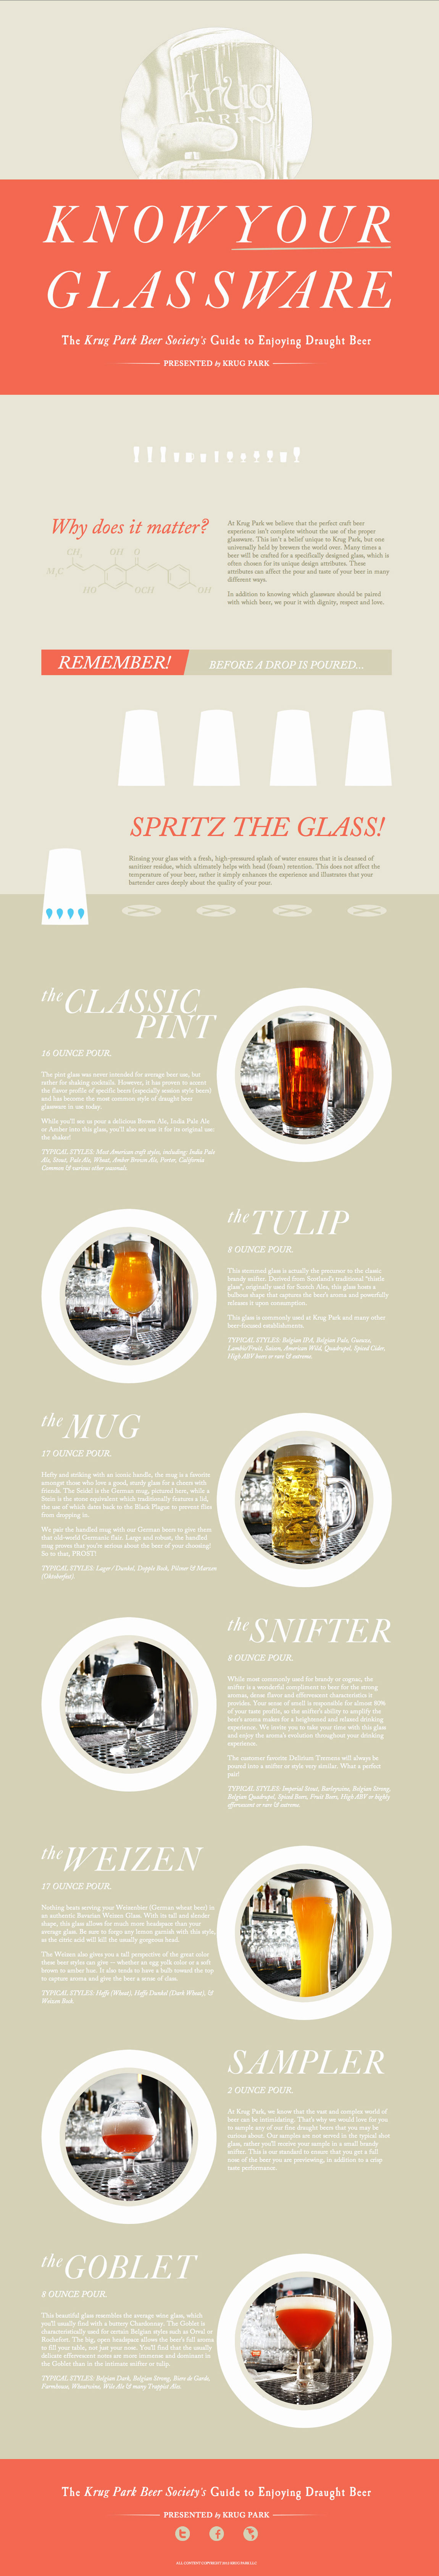 Know Your Glassware Website Screenshot